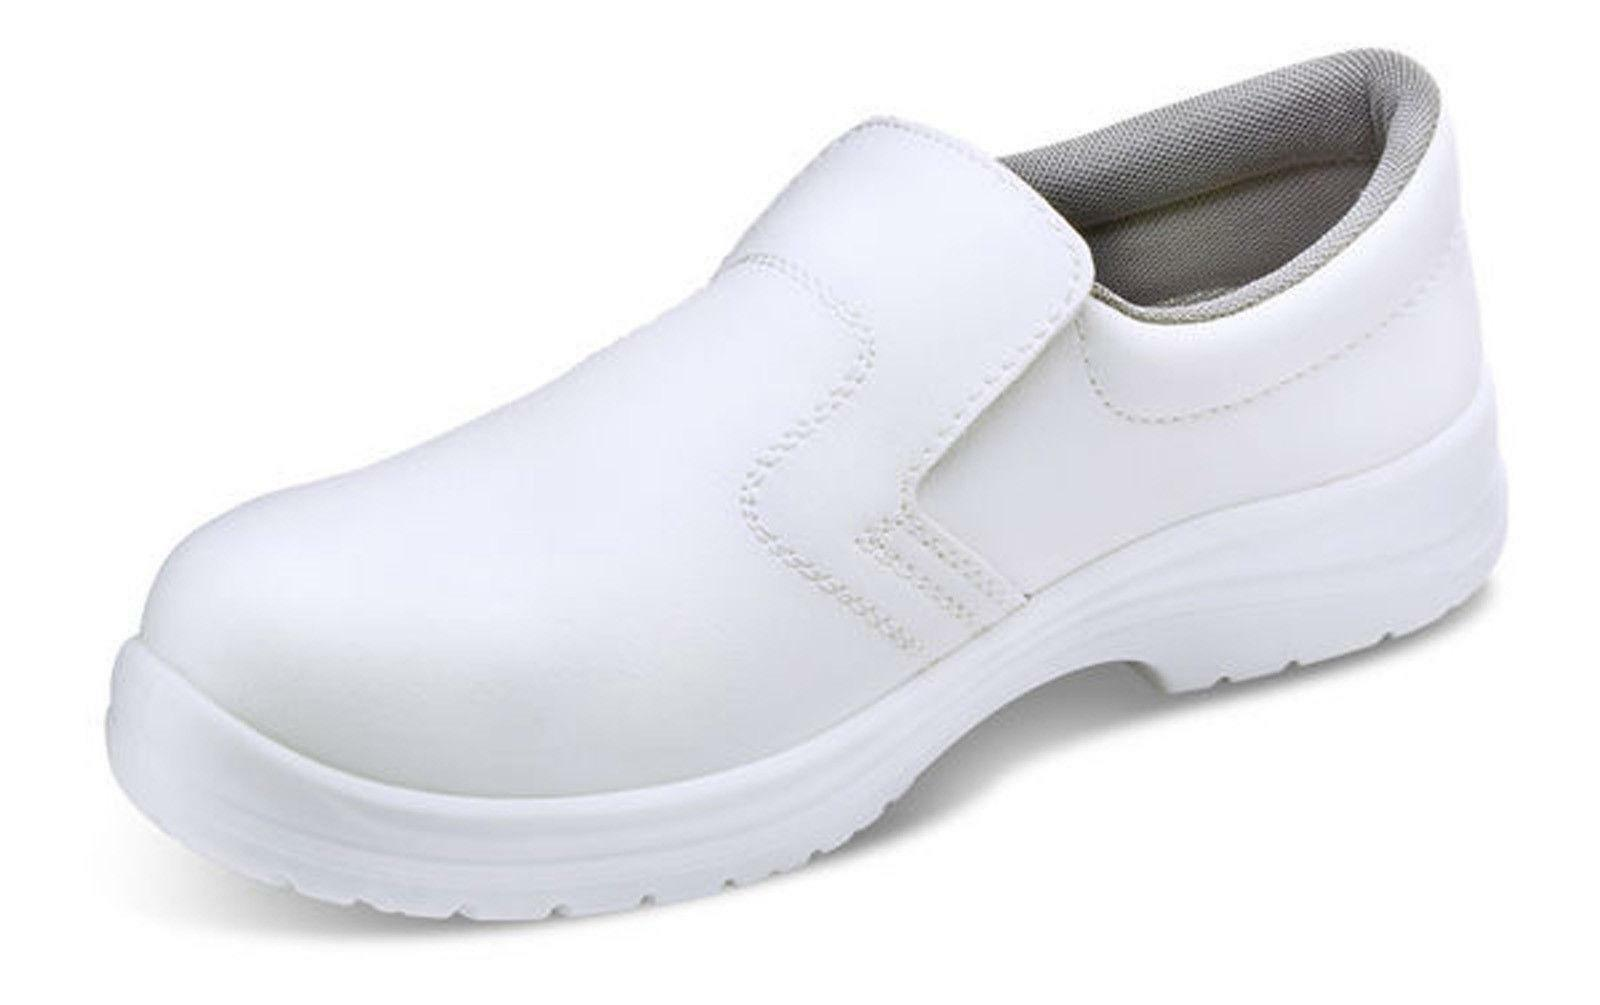 Click Micro Fibre Slip On Work shoes S2 CF832 - SALE PRICE